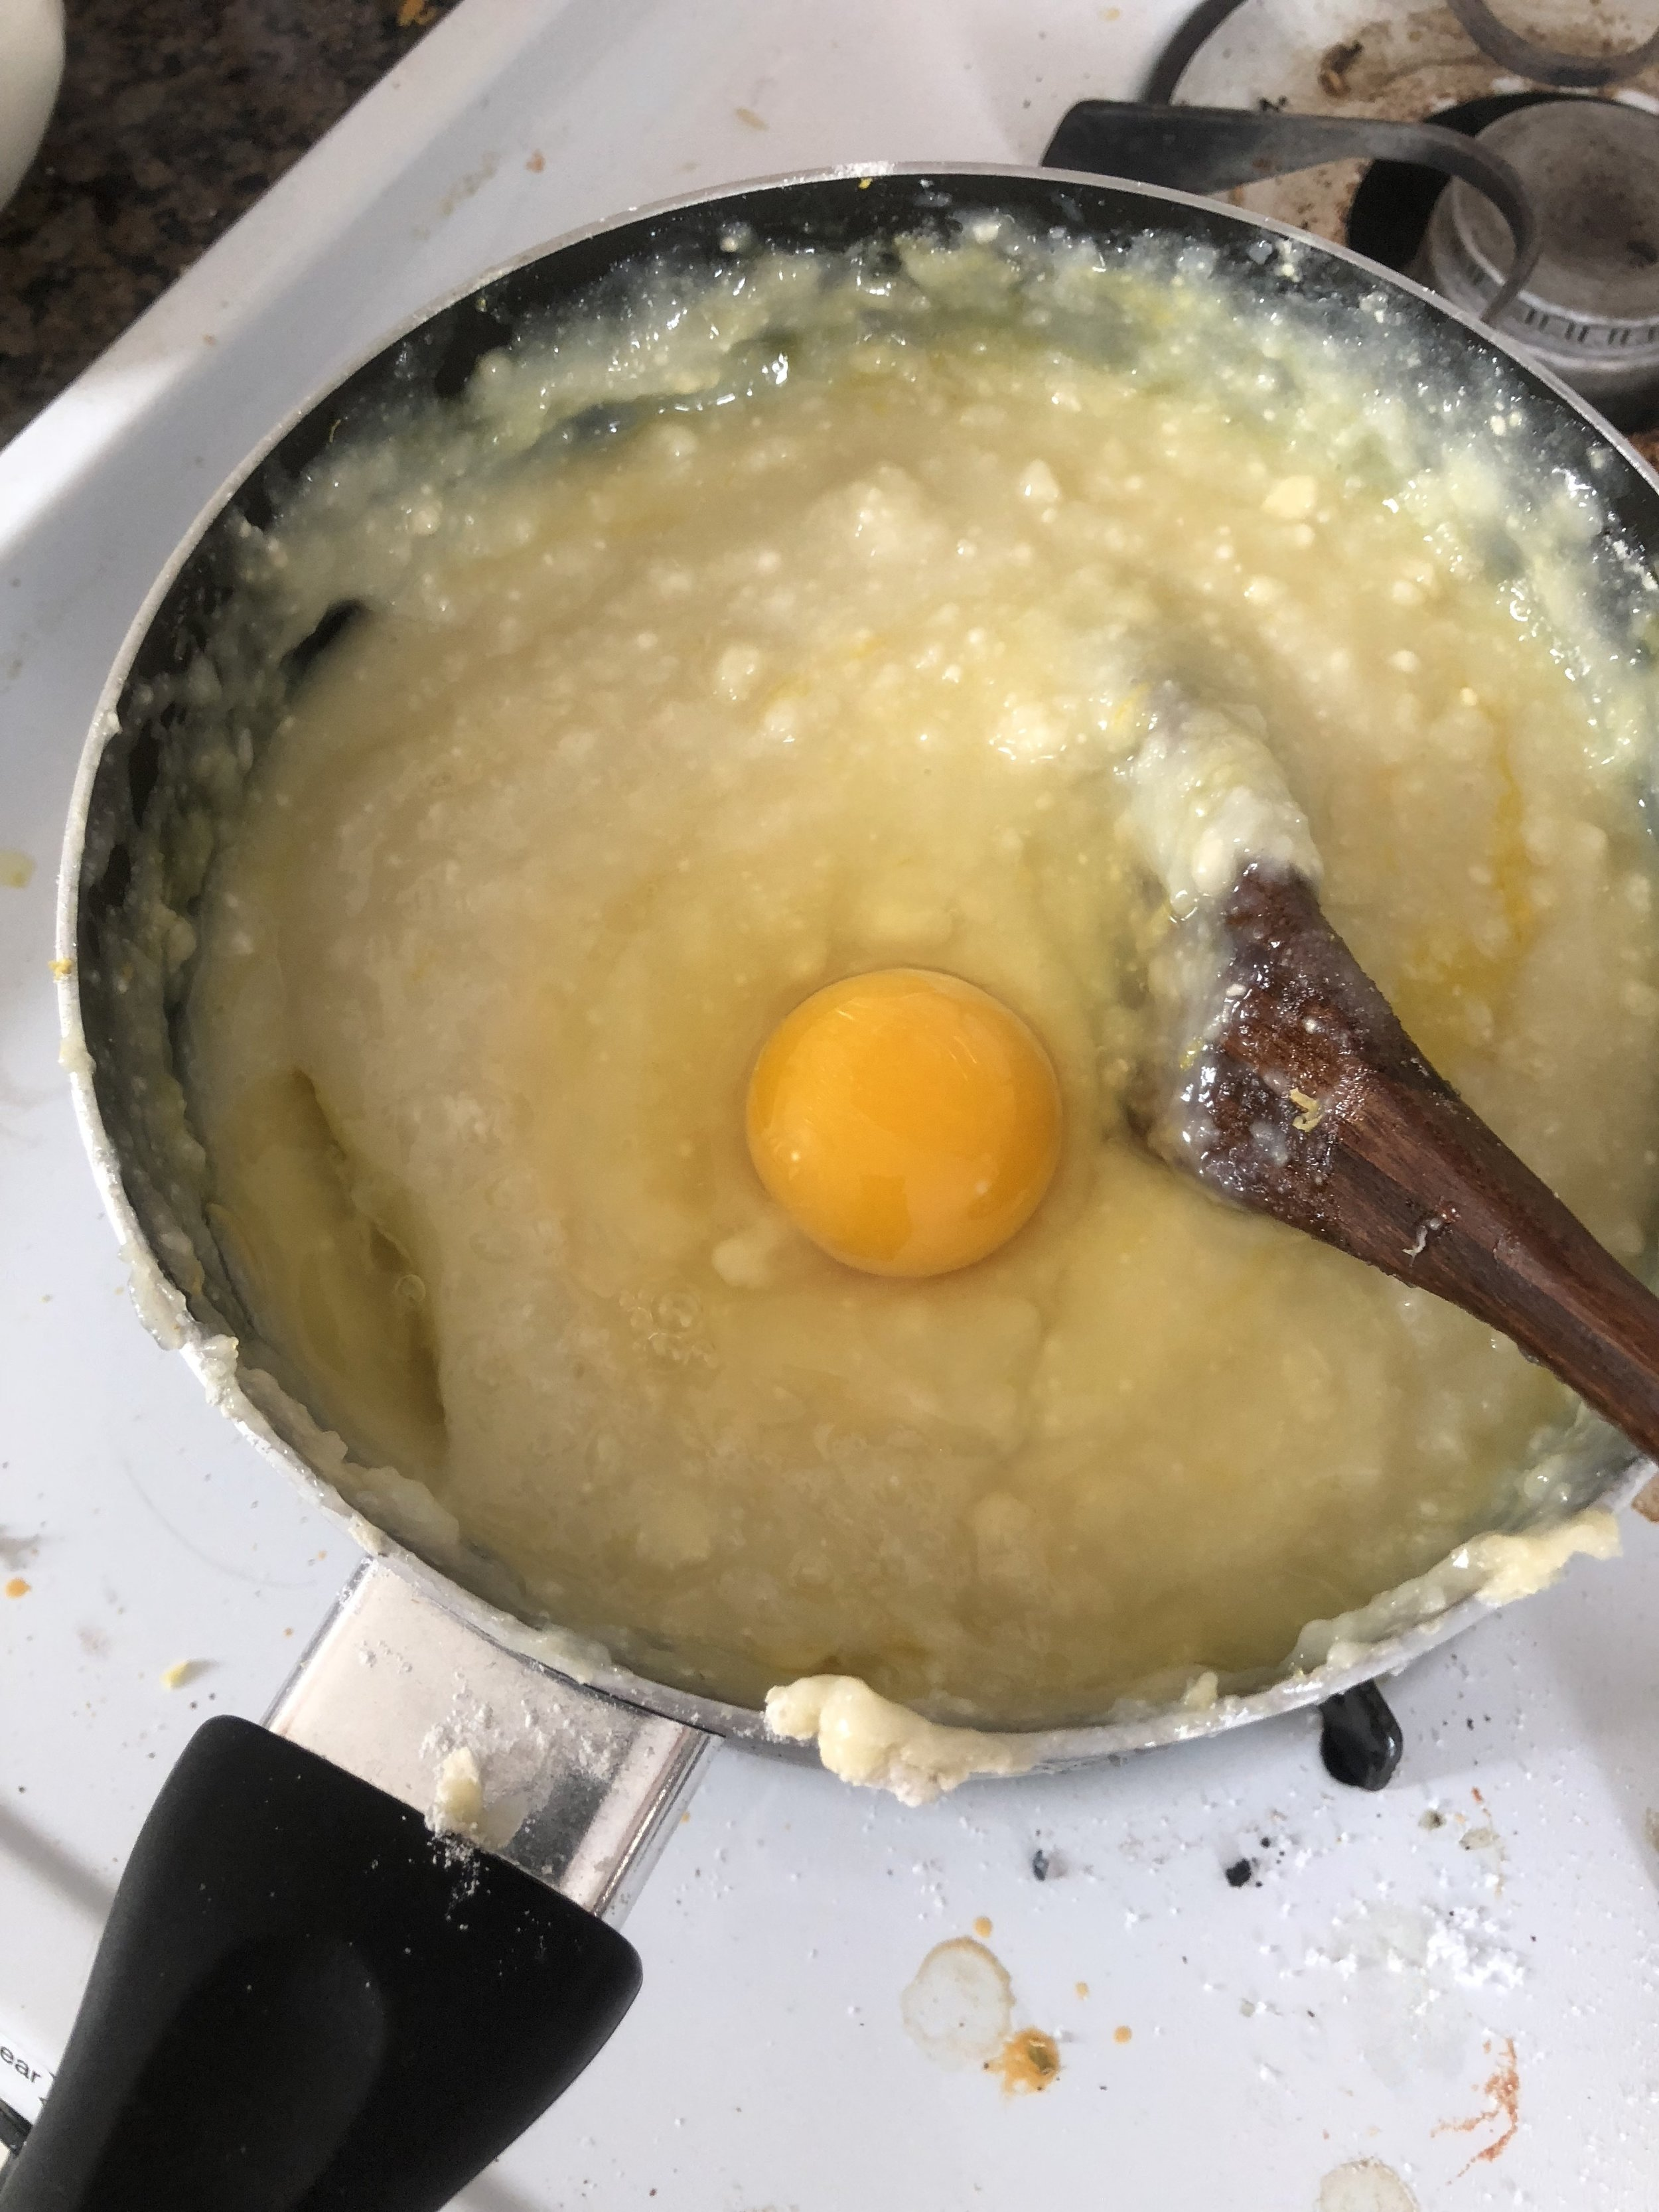 Put the the batter to a bowl to cool it down to warm, stirring frequently to prevent a skin from forming. Add eggs when the mixture cools (if you add the eggs earlier they'll cook in the hot bath of the mixture...